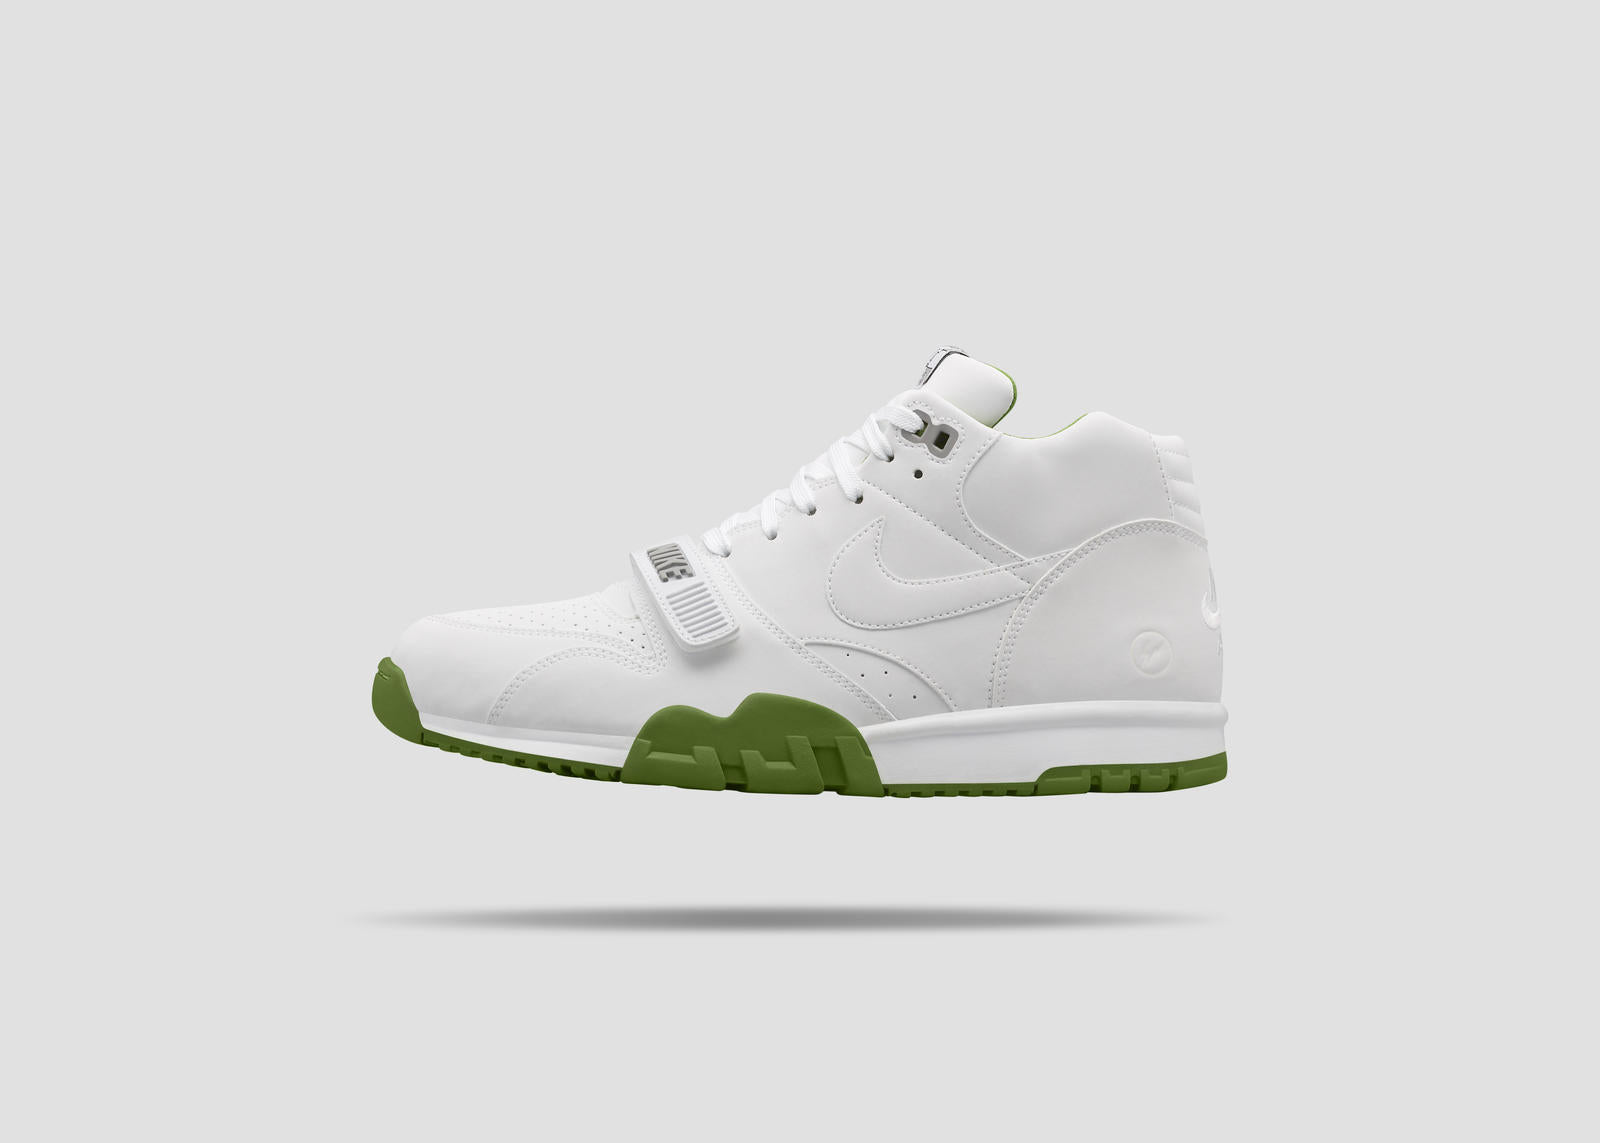 NikeCourt_Air_Trainer_1_x_fragment_1_rectangle_1600